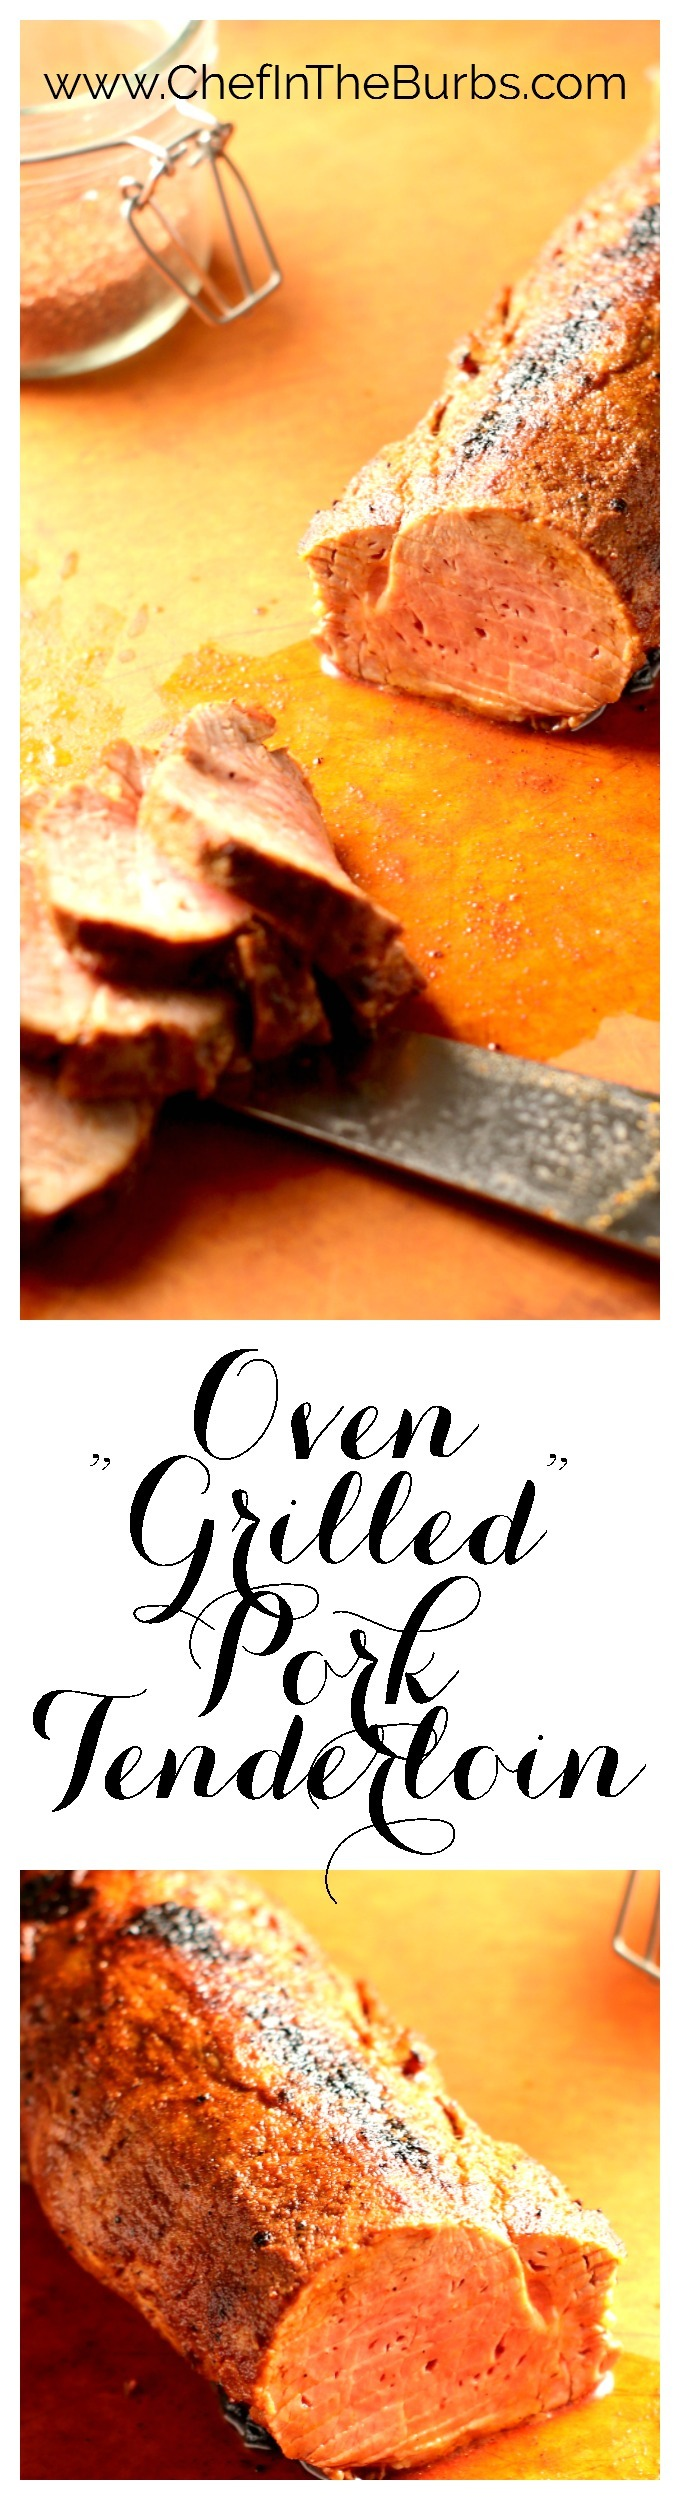 Even if you're not into grilling, per se, this faux grill recipe takes about 2 minutes to prepare and 15 minutes in the oven so it's perfect for a busy weeknight